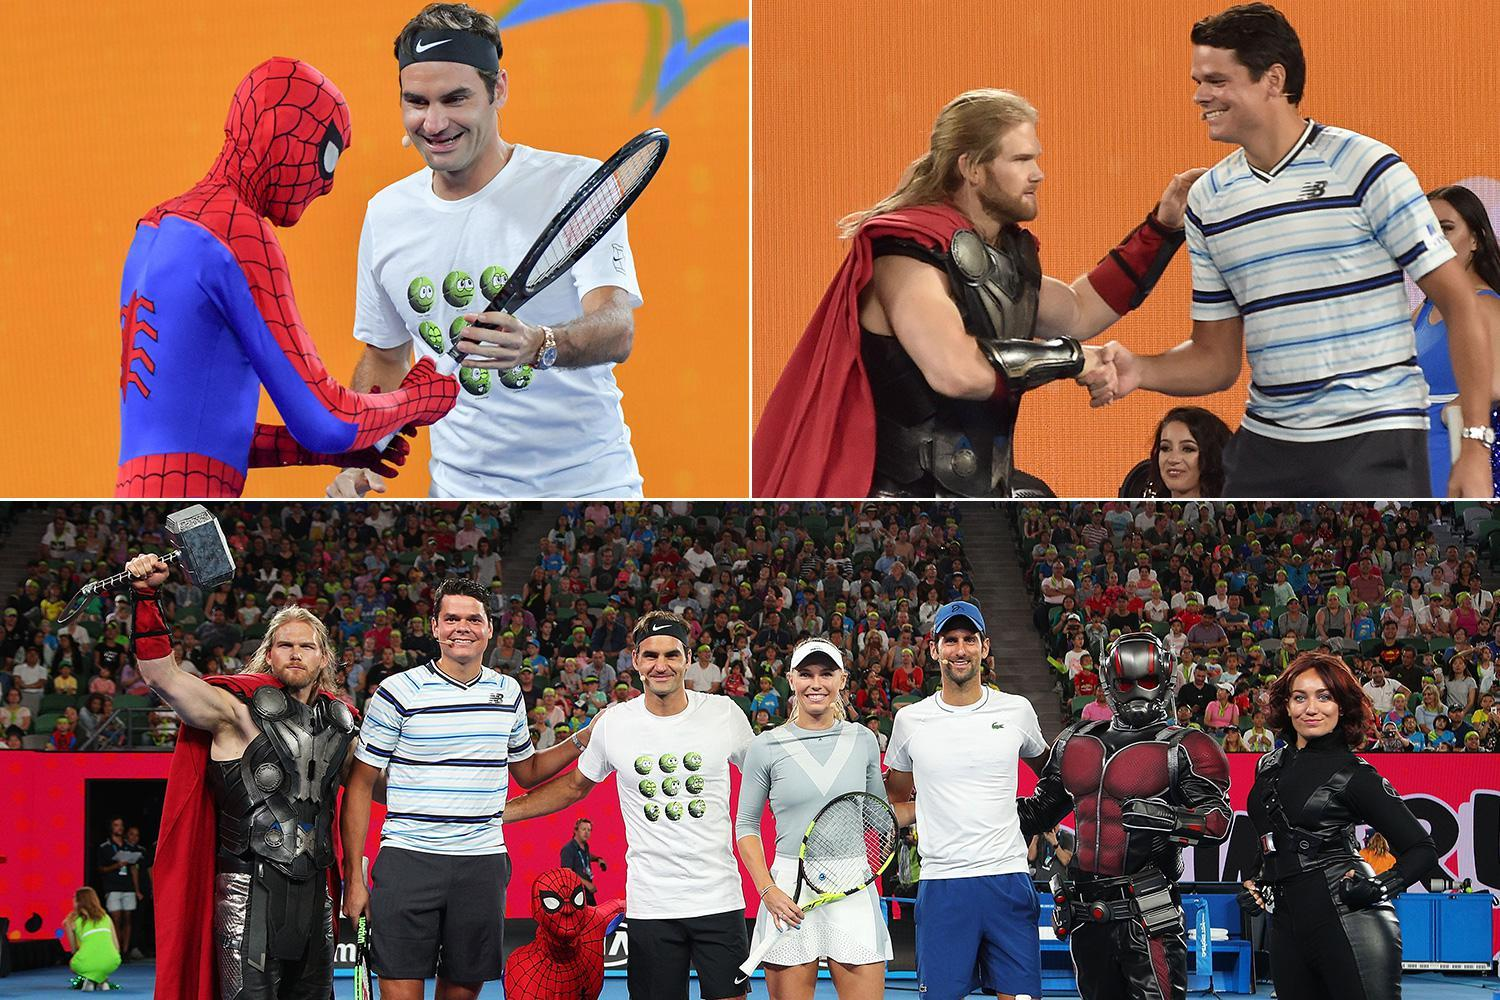 Australian Open 2018: Roger Federer plays tennis with Spider-Man… while Milos Raonic practices with Thor